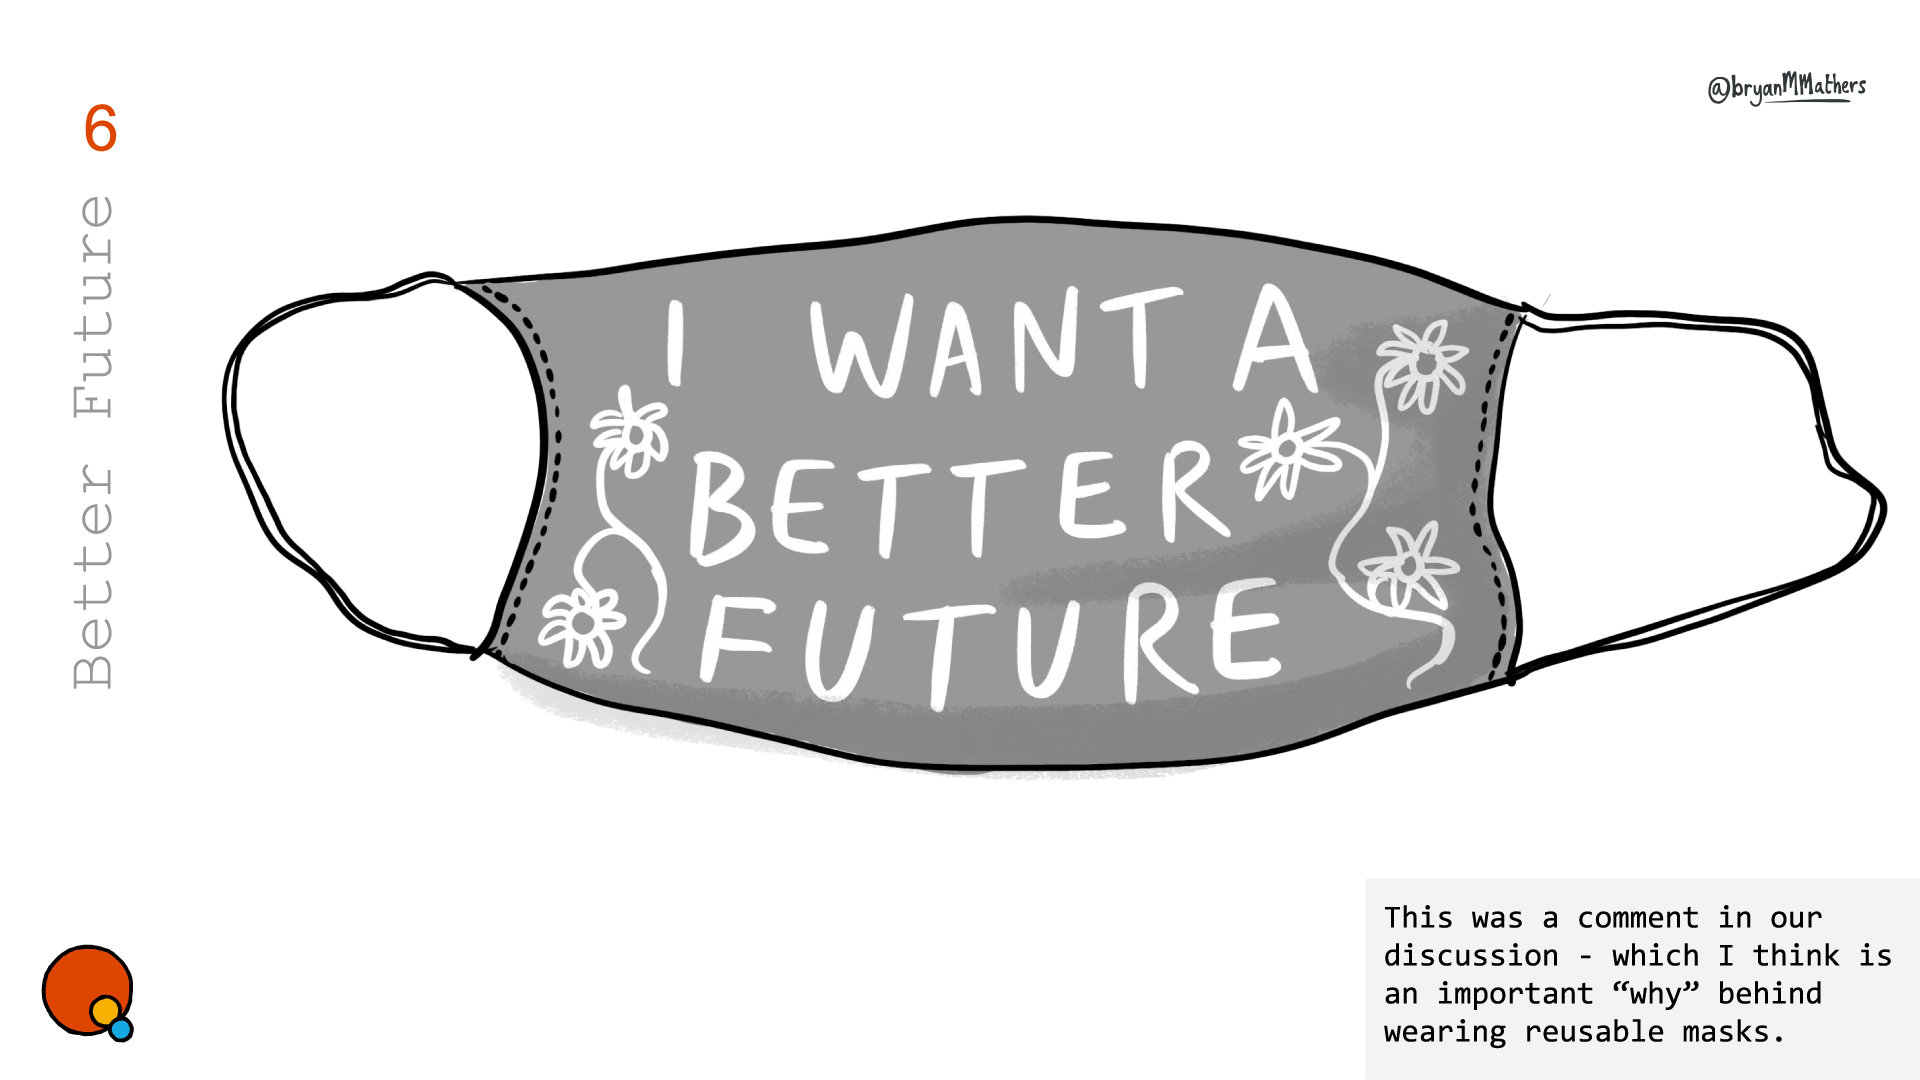 BFFP - Gloves and Masks - I want a better future